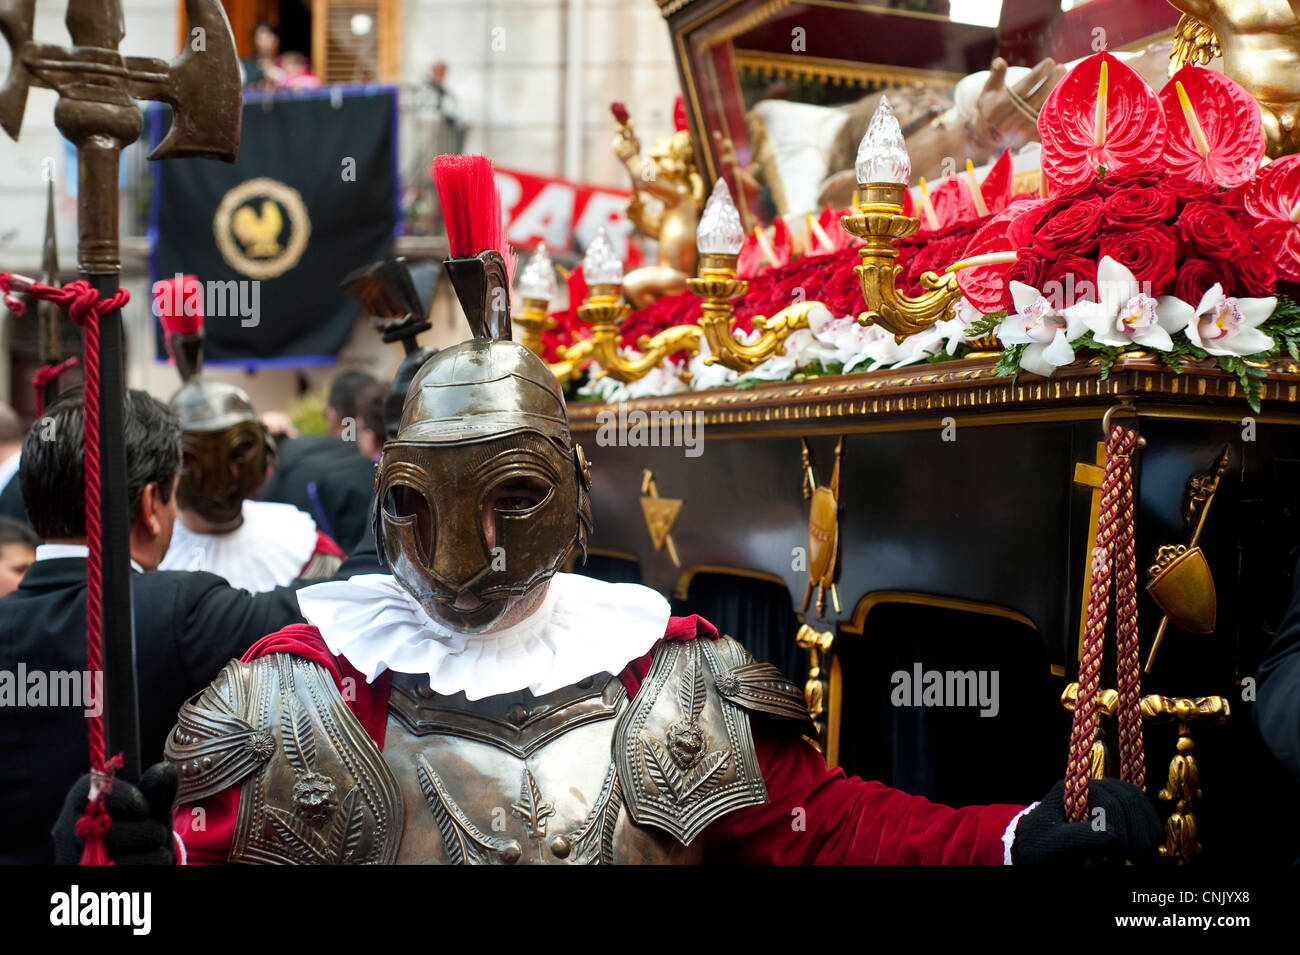 Palermo, Sicily, Italy -  Man dressed as Roman soldier during Holy Friday Easter celebrations - Stock Image